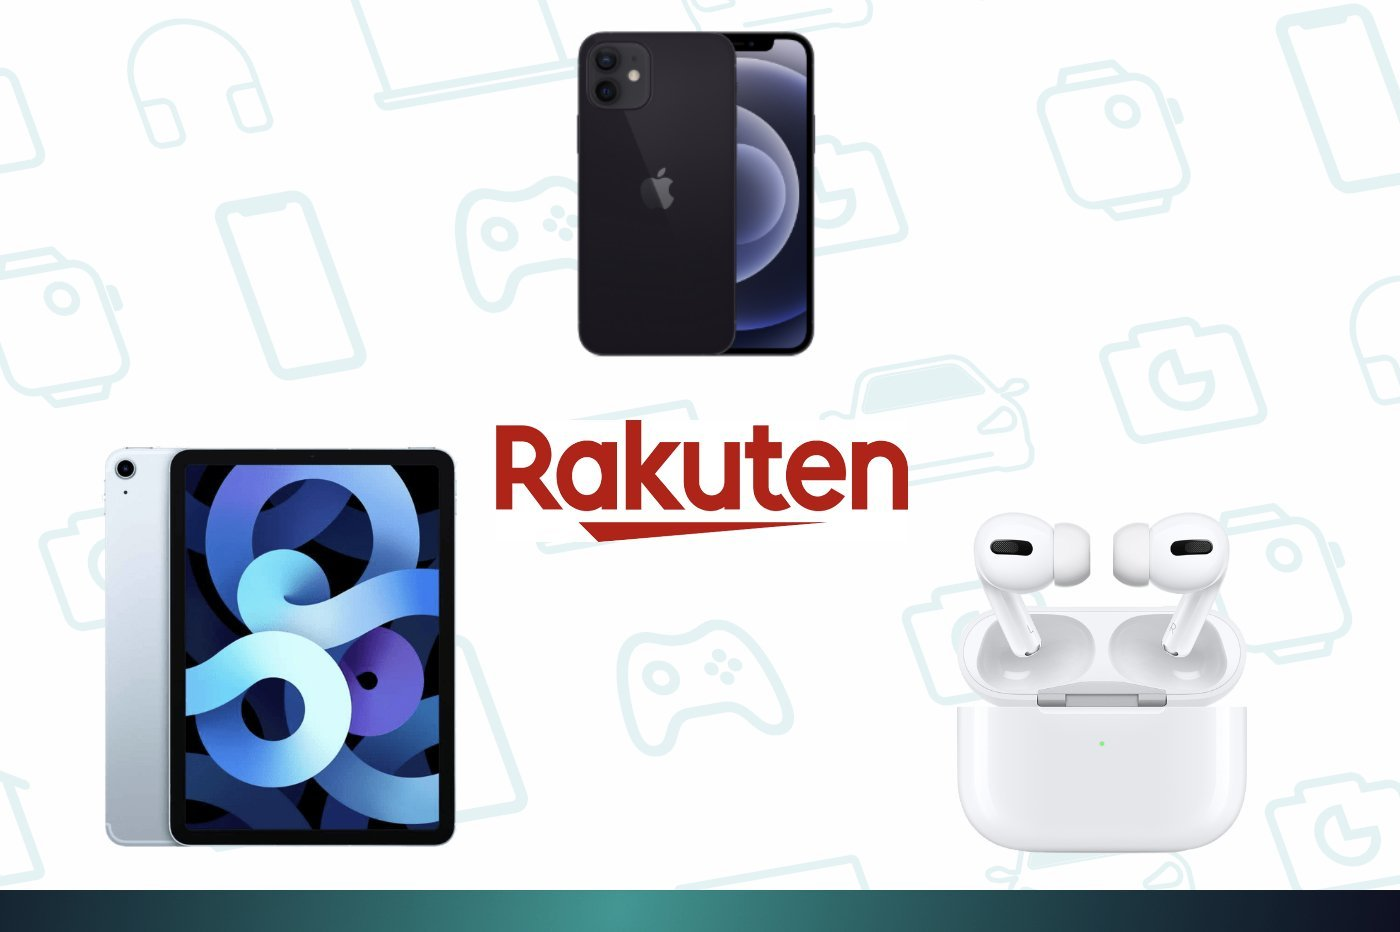 Black Friday Rakuten : iPhone 12, Airpods Pro et iPad Air en forte baisse grâce à un code promo